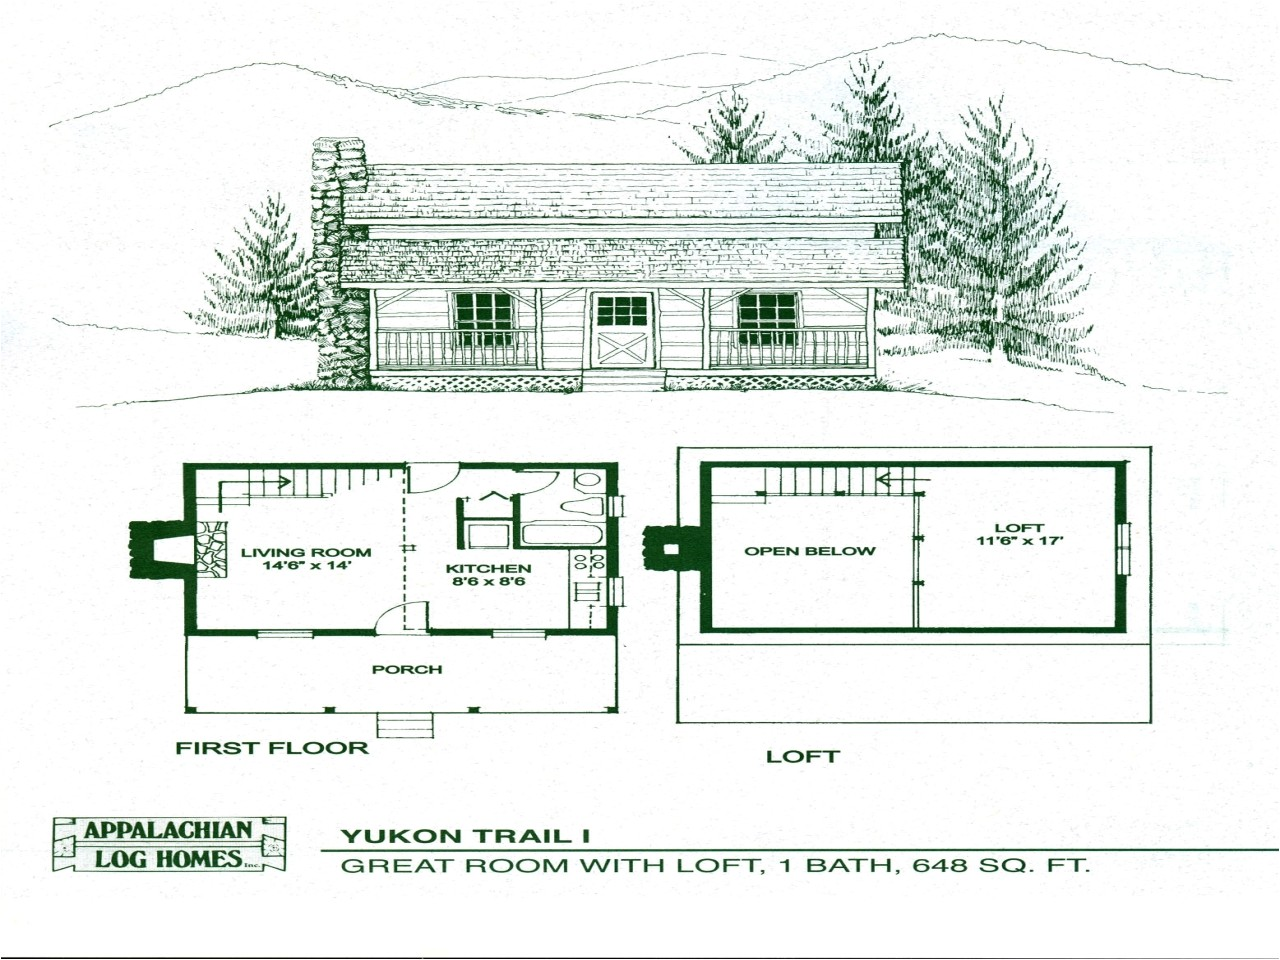 2627021212a92b93 small modular homes floor plans small cabin floor plans with loft